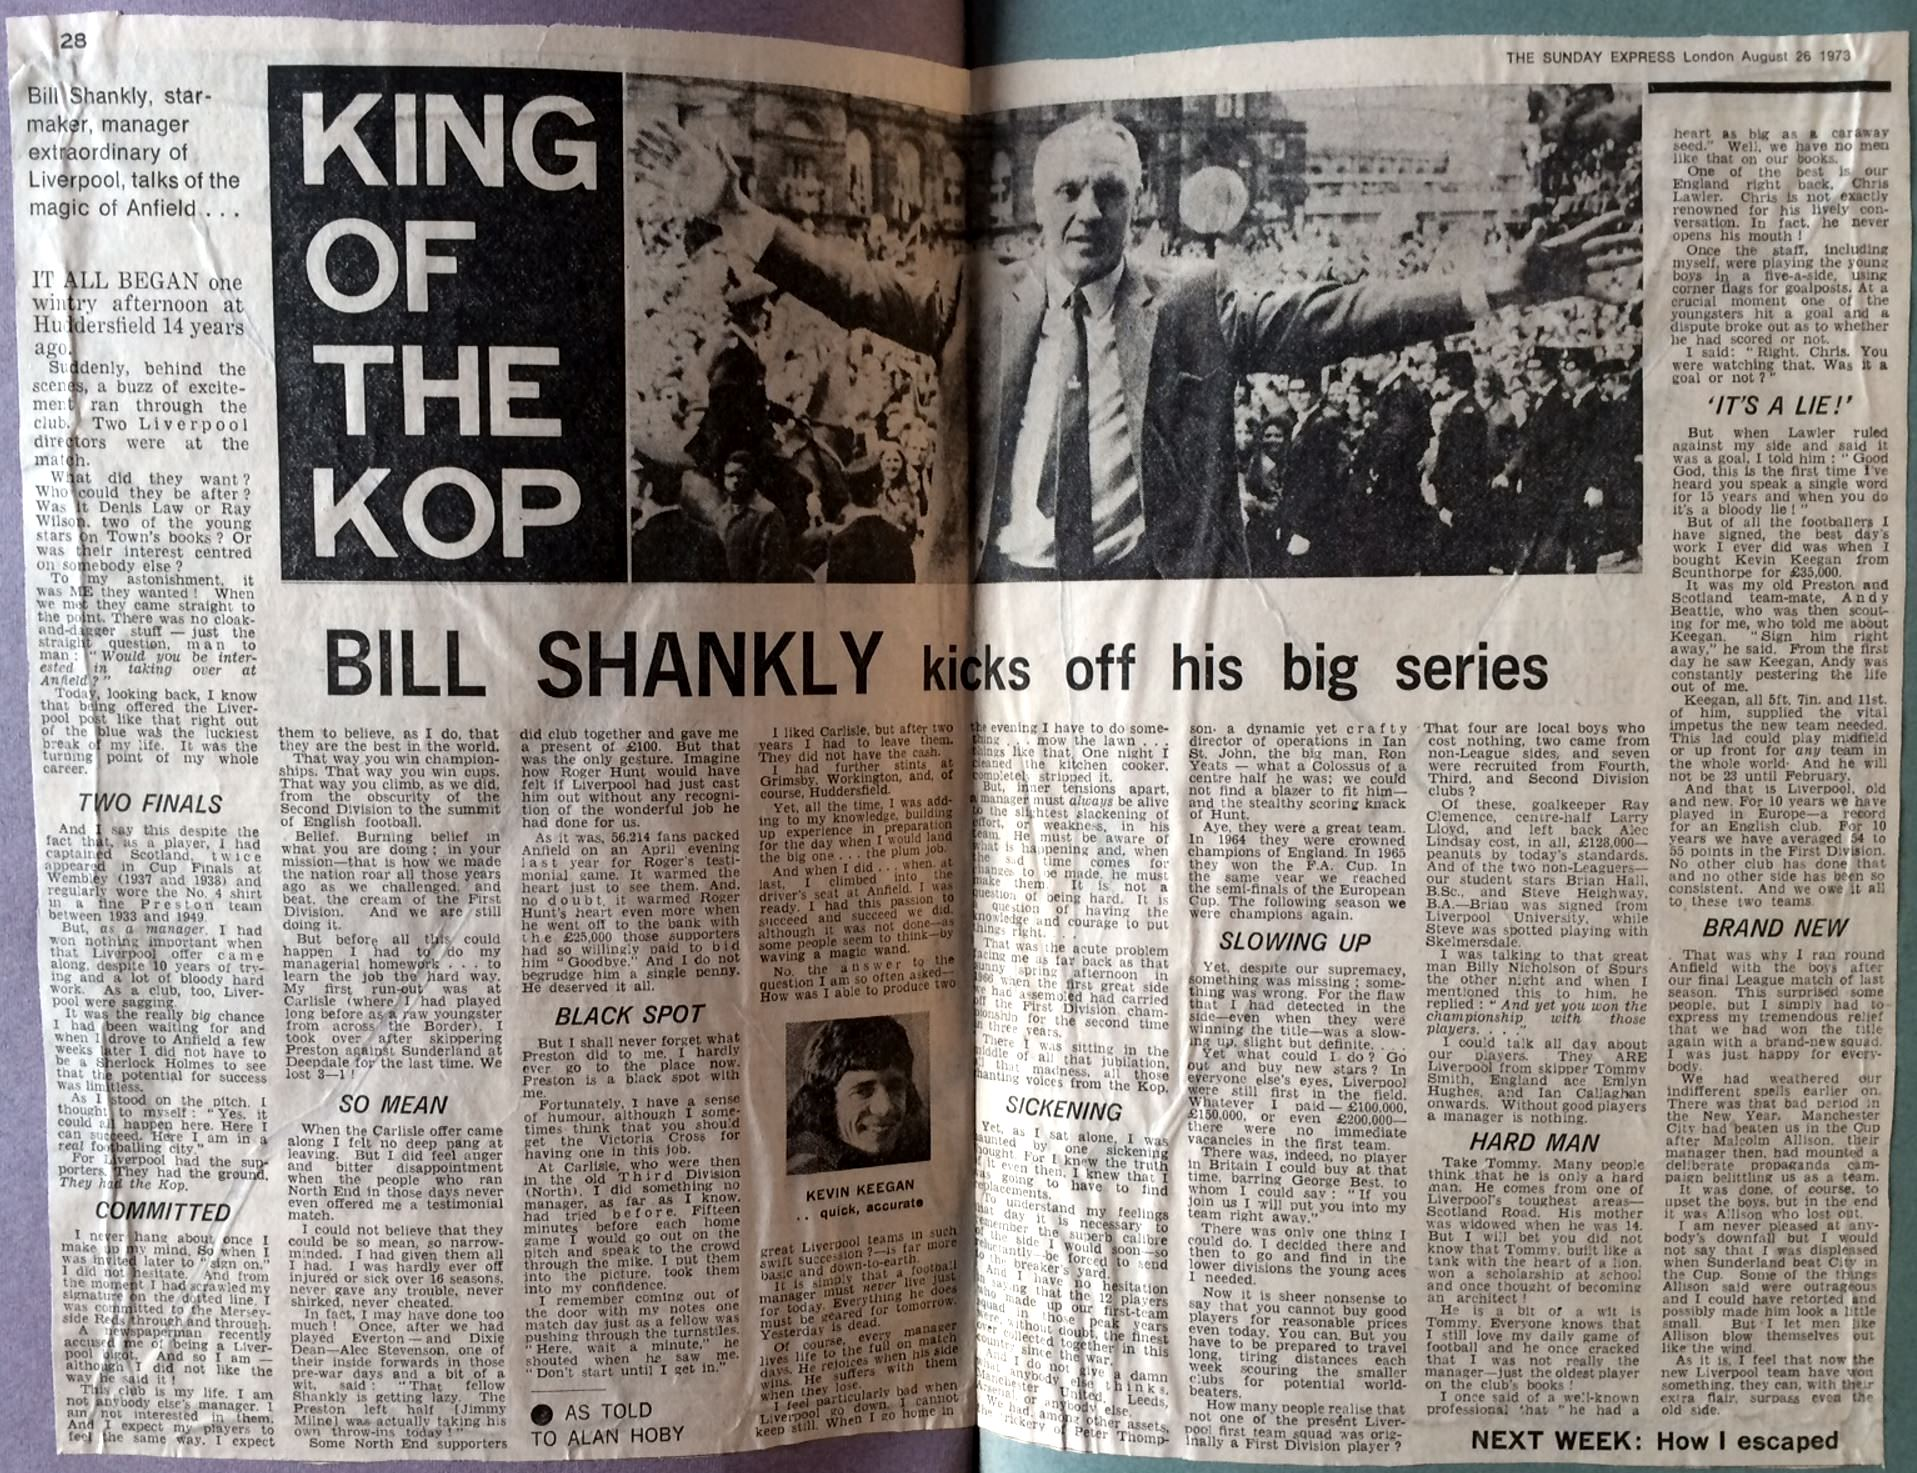 Sunday Express series in 1973 - King of the Kop